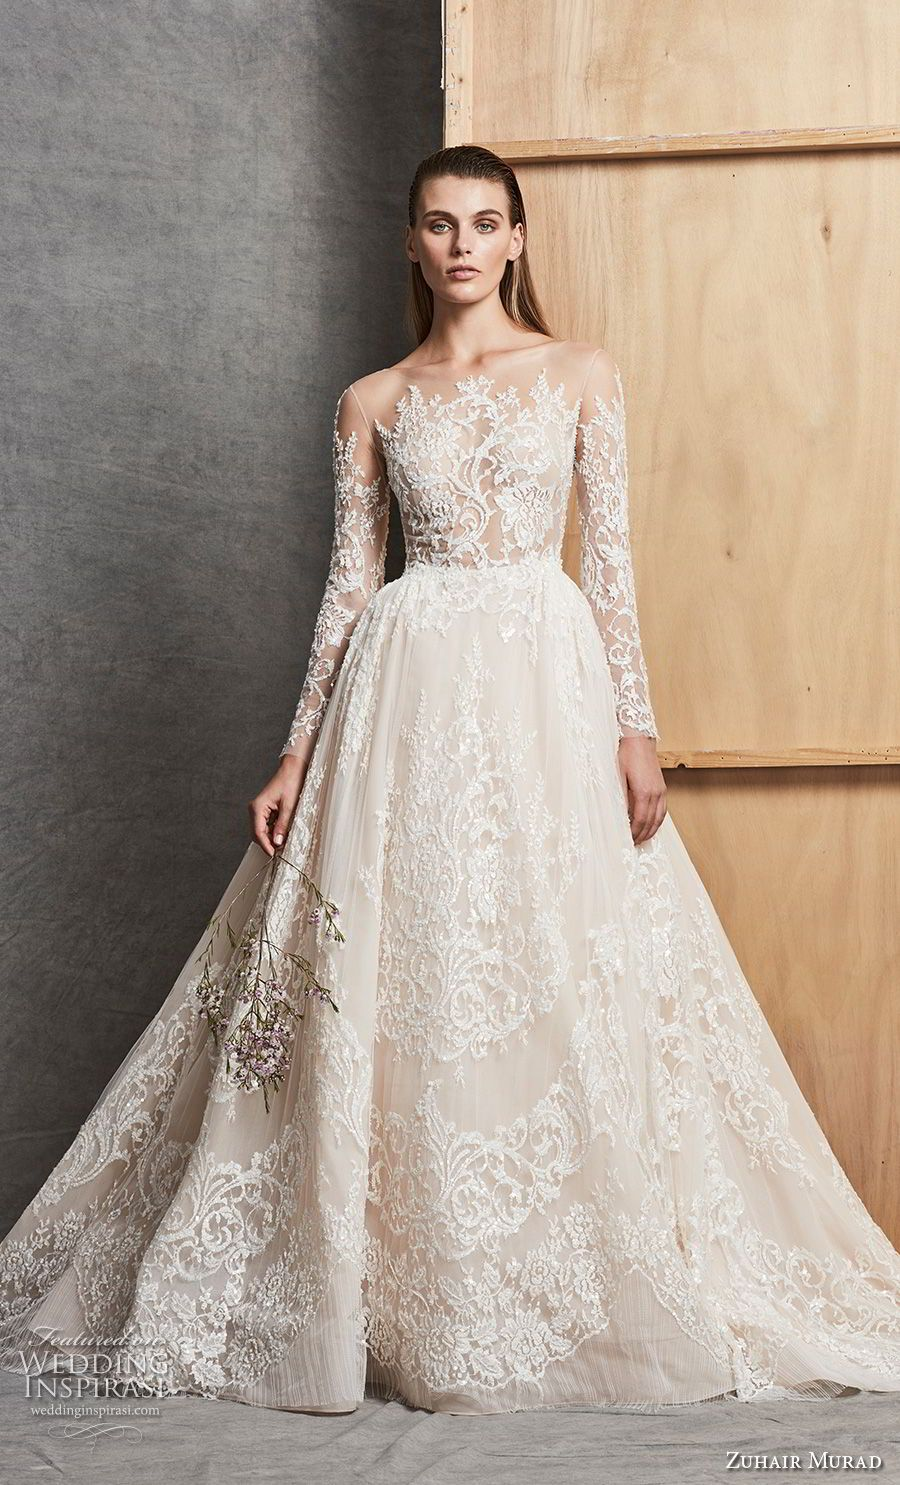 Zuhair Murad Fall 2018 Wedding Dresses Wedding Dress Long Sleeve